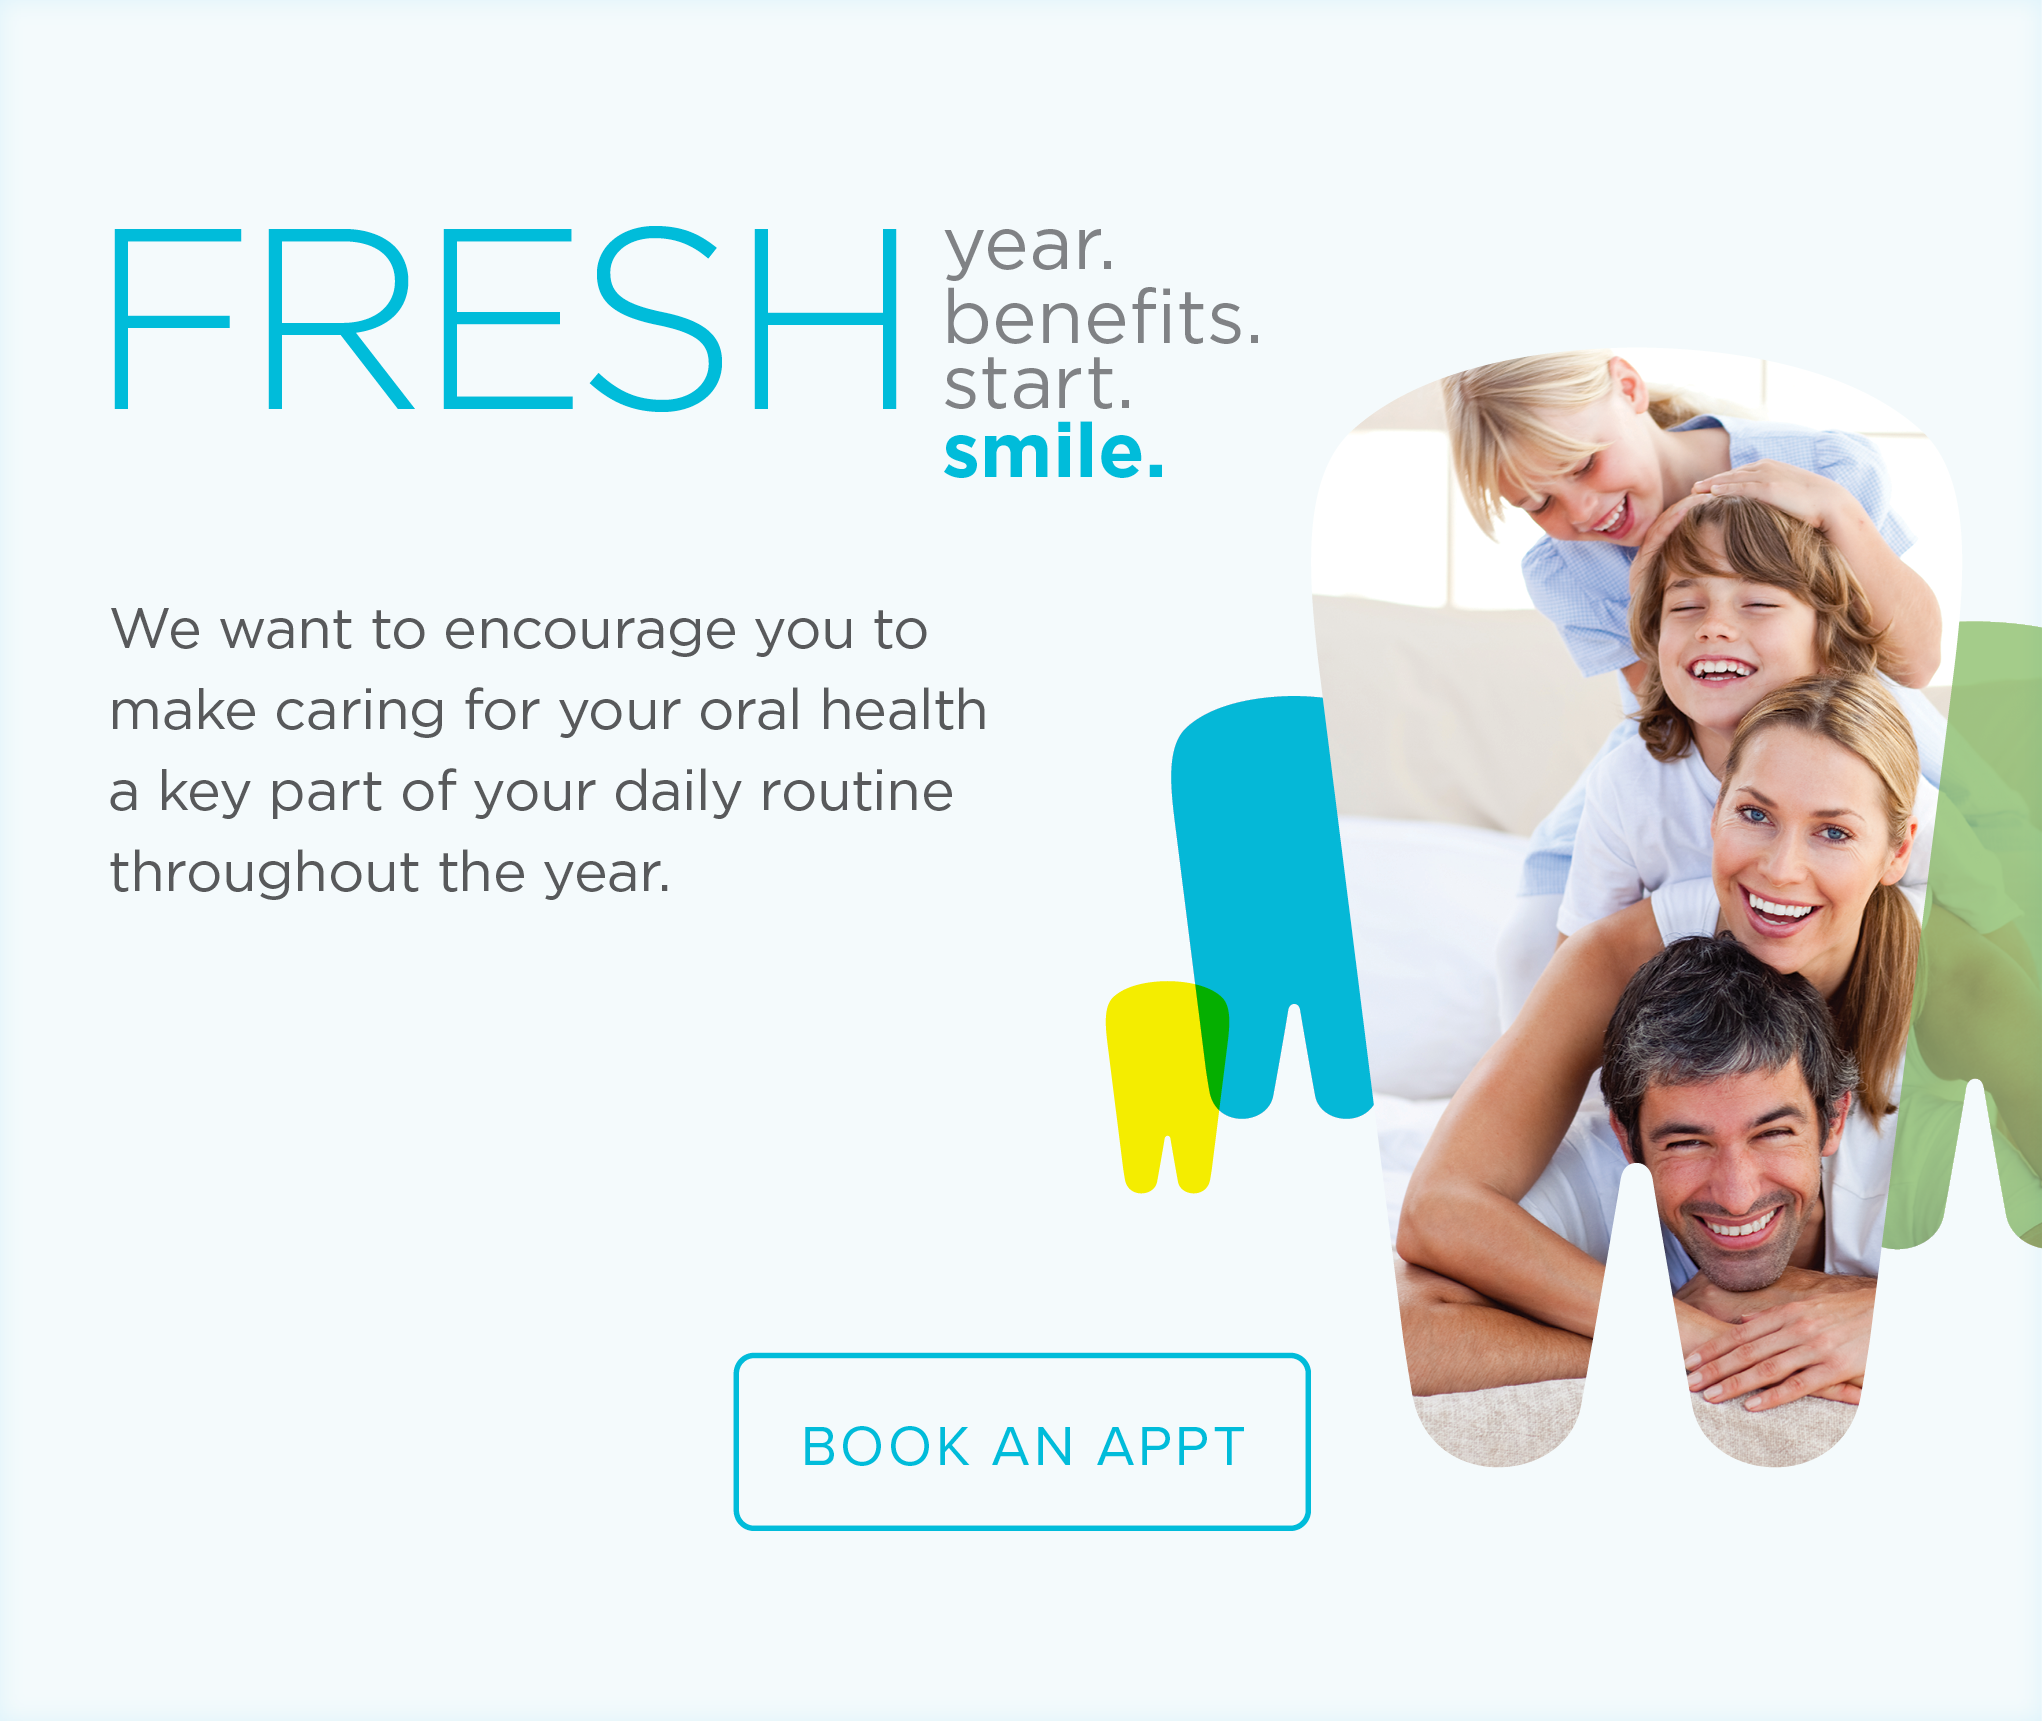 Francis Park Dentistry - Make the Most of Your Benefits